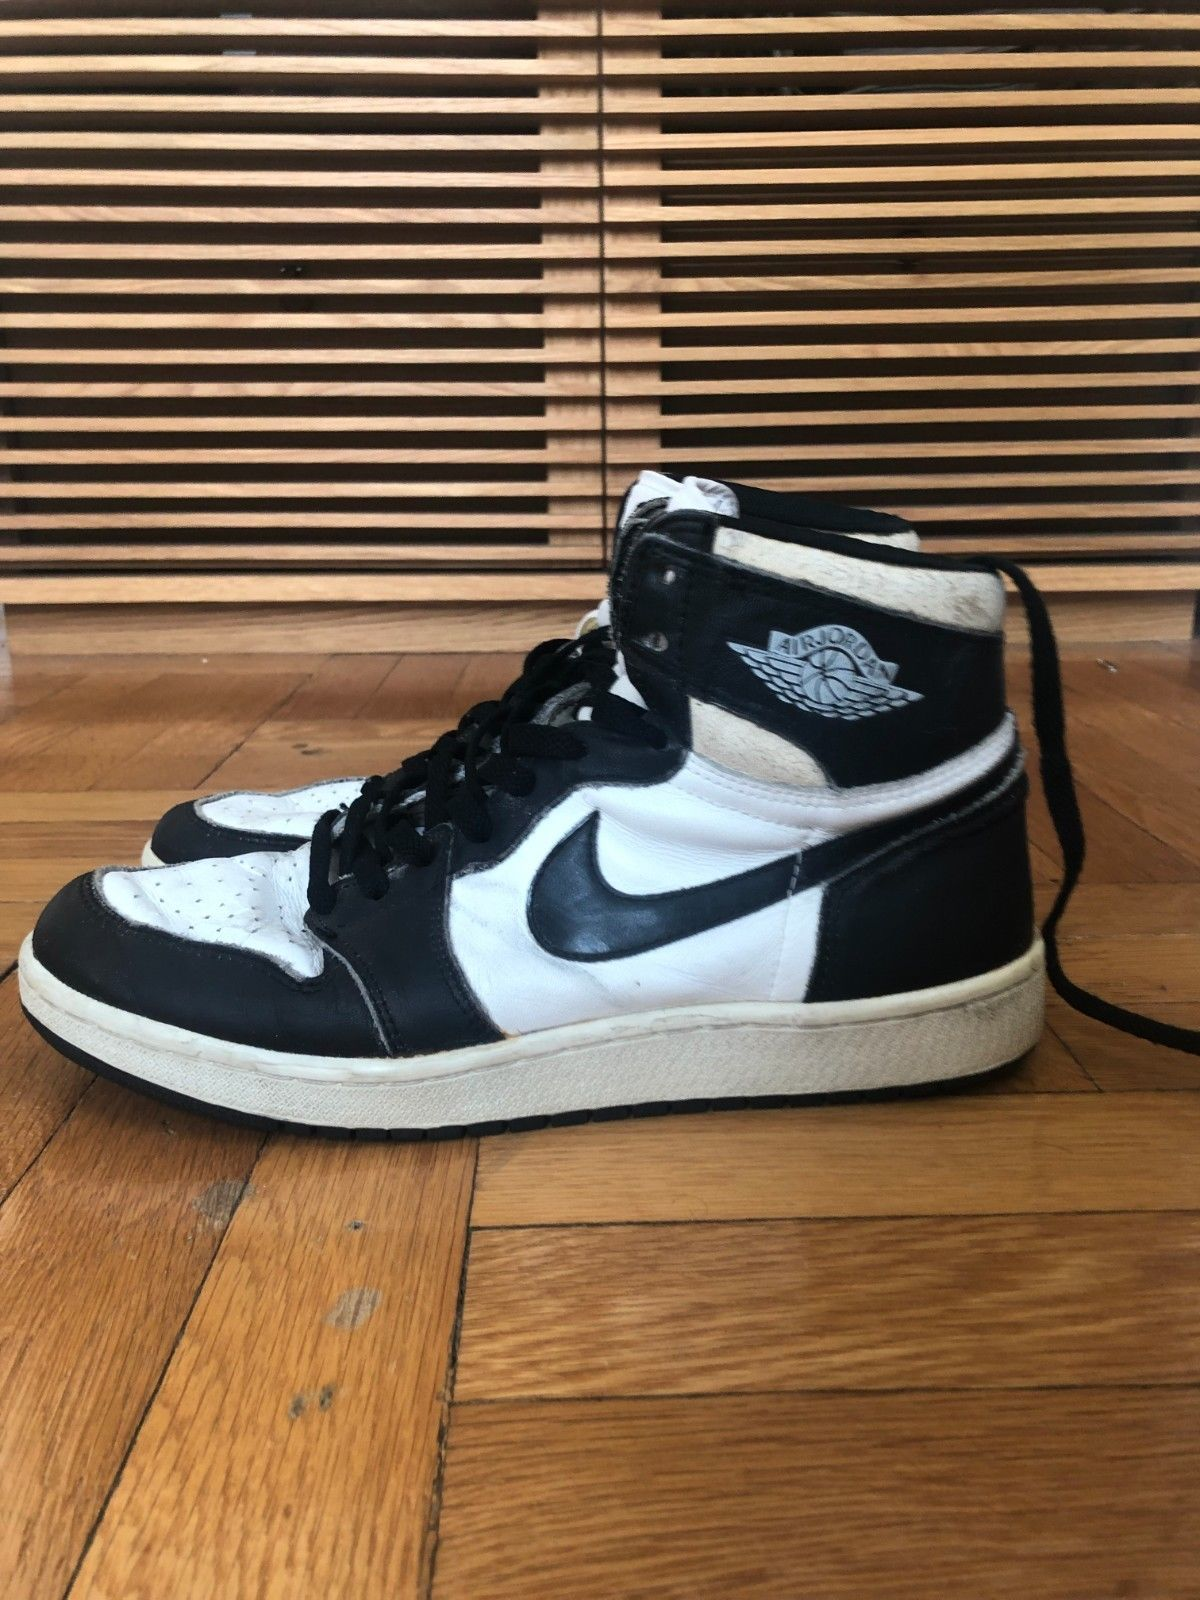 71018c8e90d3ed Details about ORIGINAL 1985 Chicago OG Air Jordan 1 in size 10.5 ...